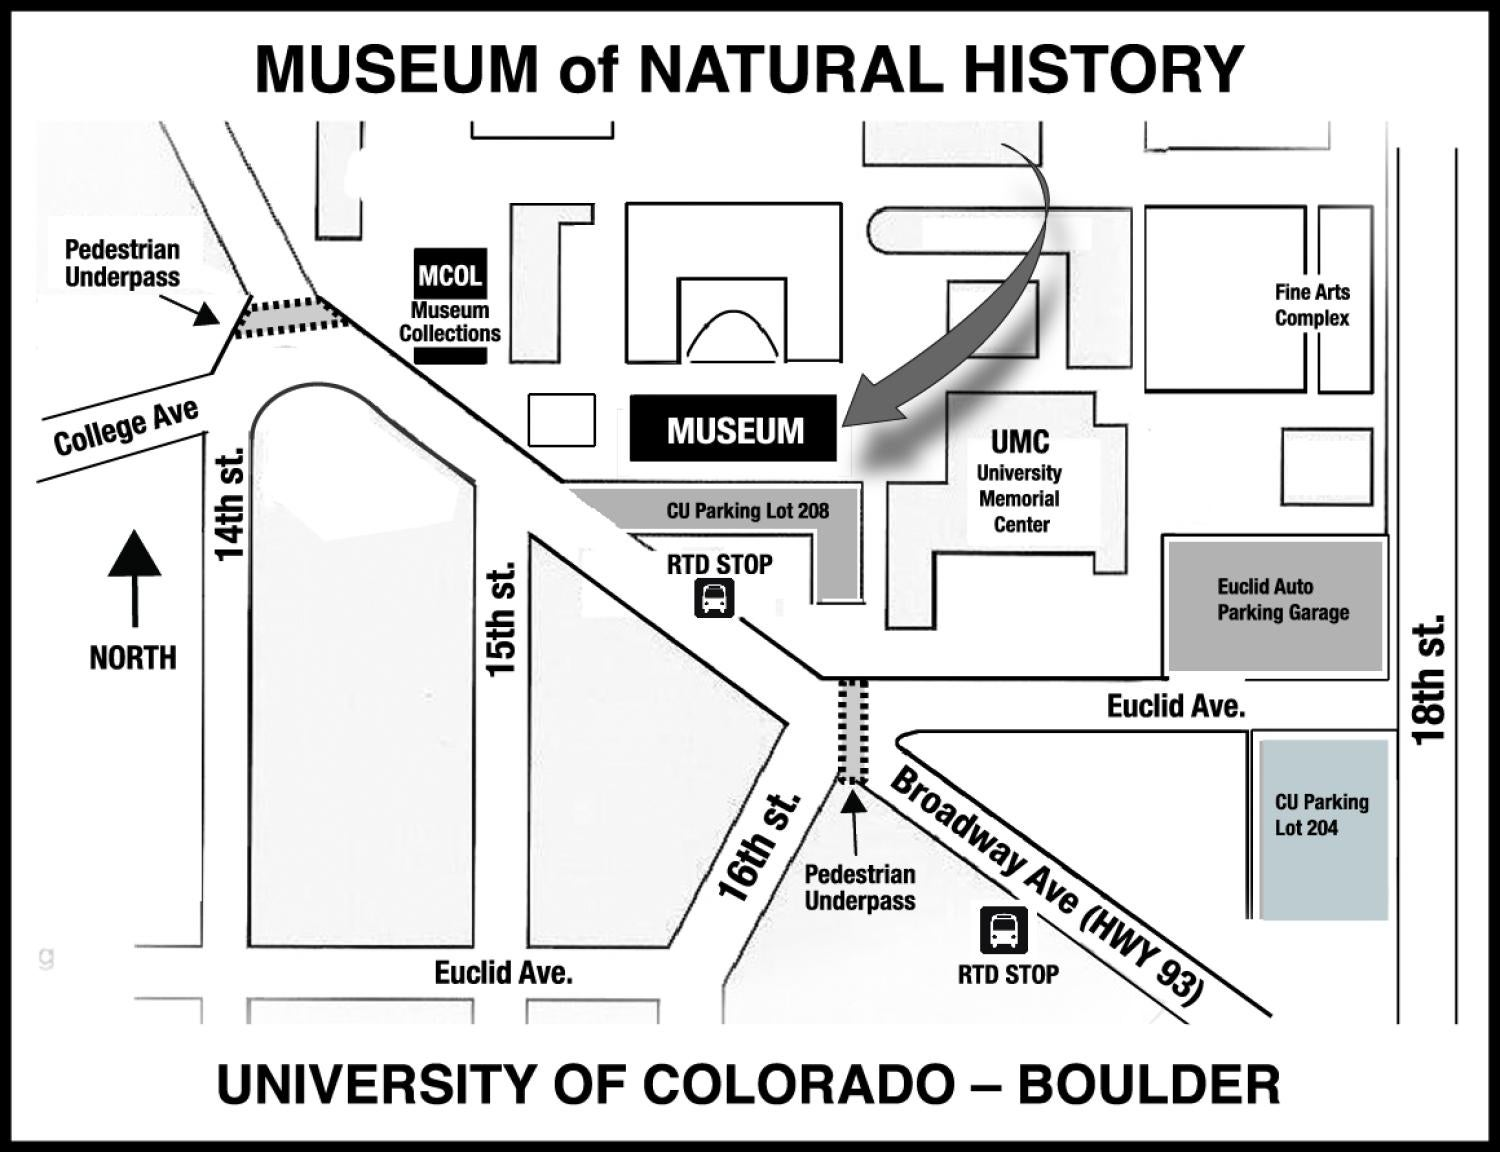 Natural History Museum Parking Lot